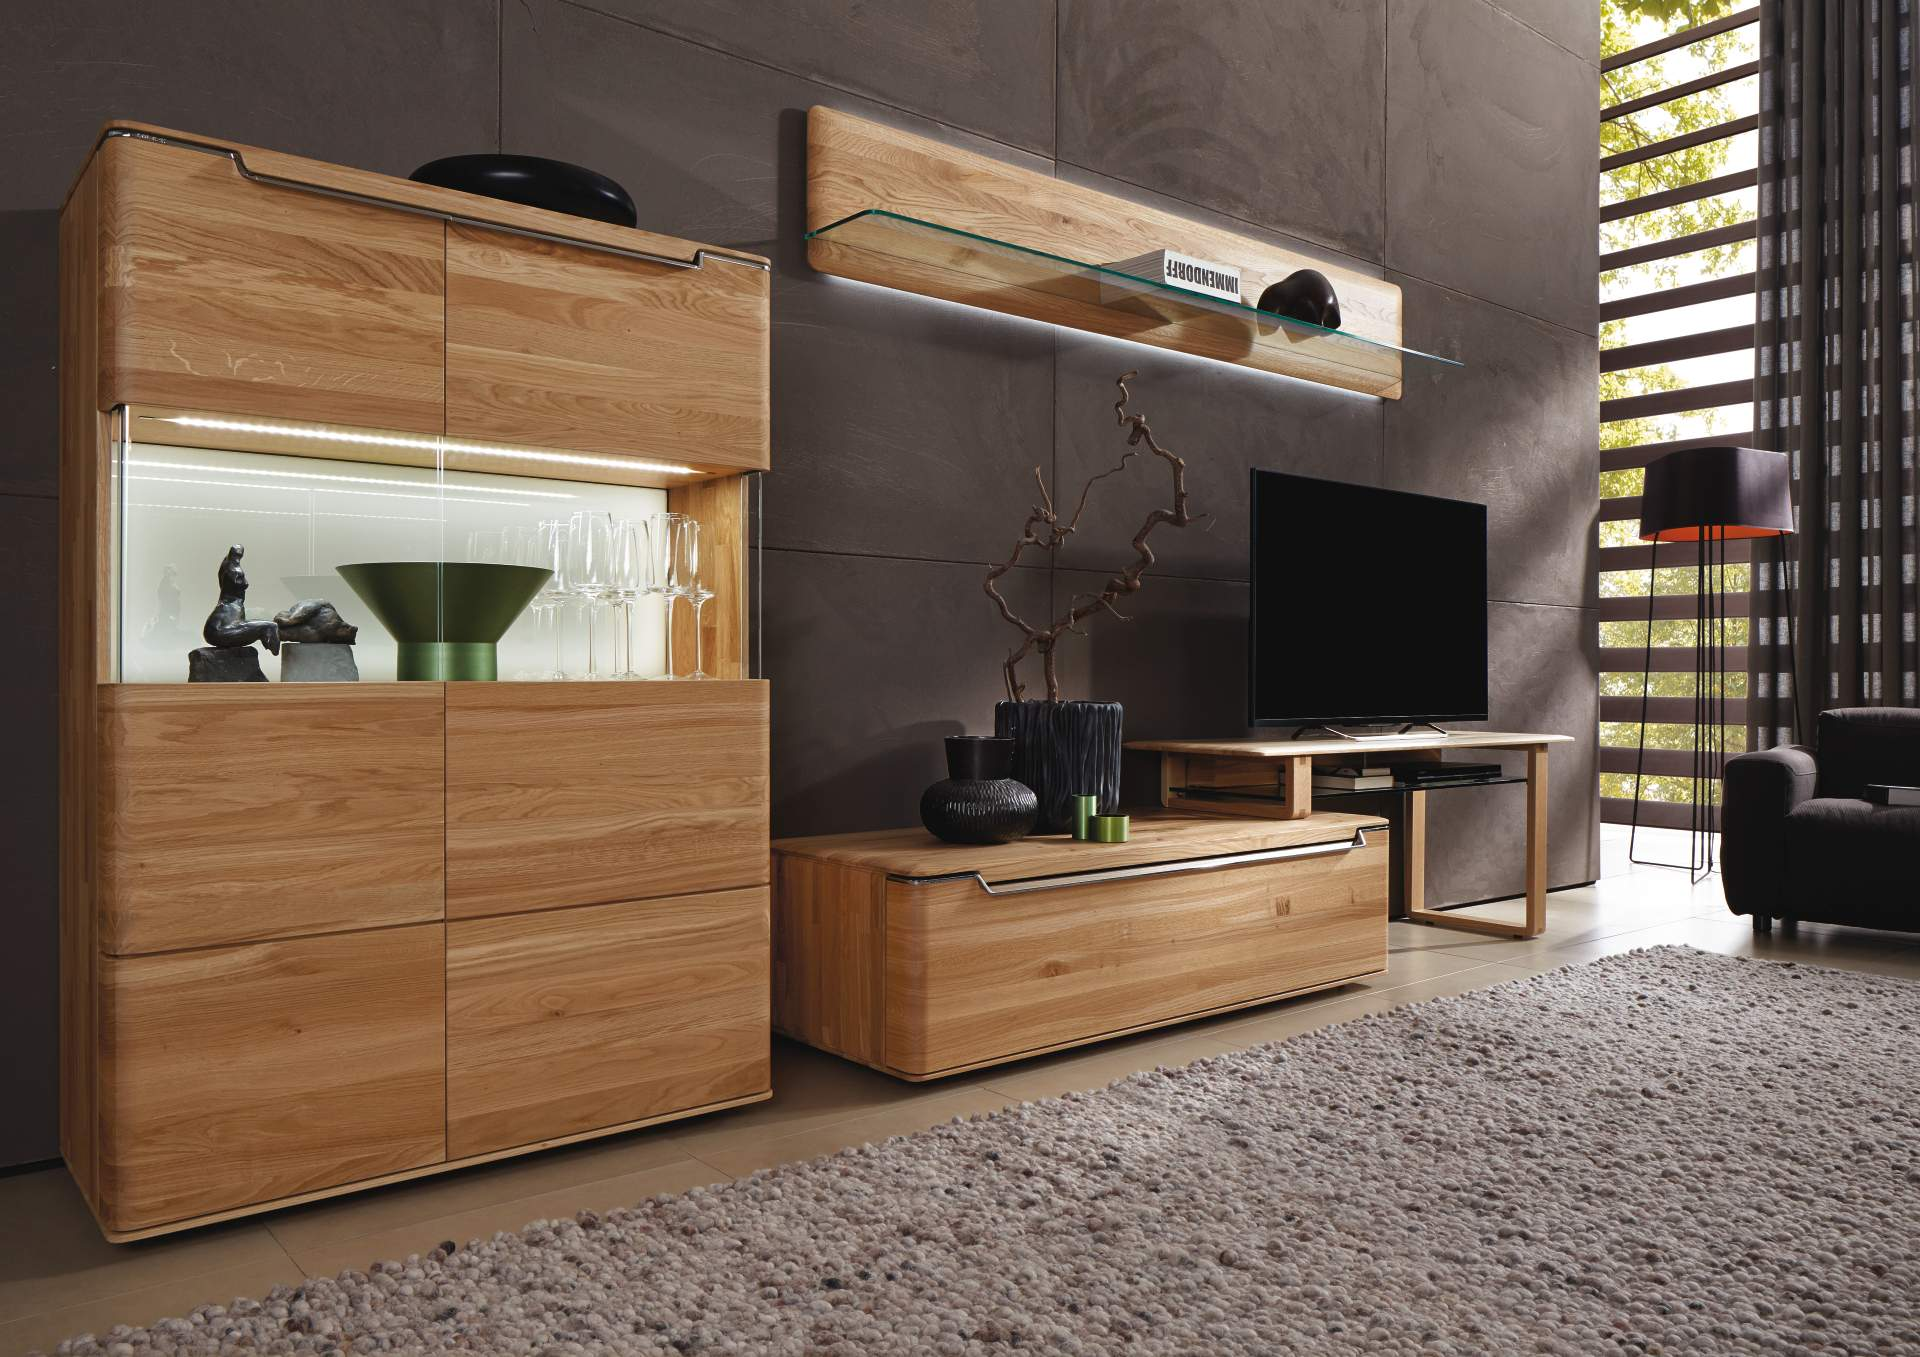 h lsta wohnen mayer m bel. Black Bedroom Furniture Sets. Home Design Ideas